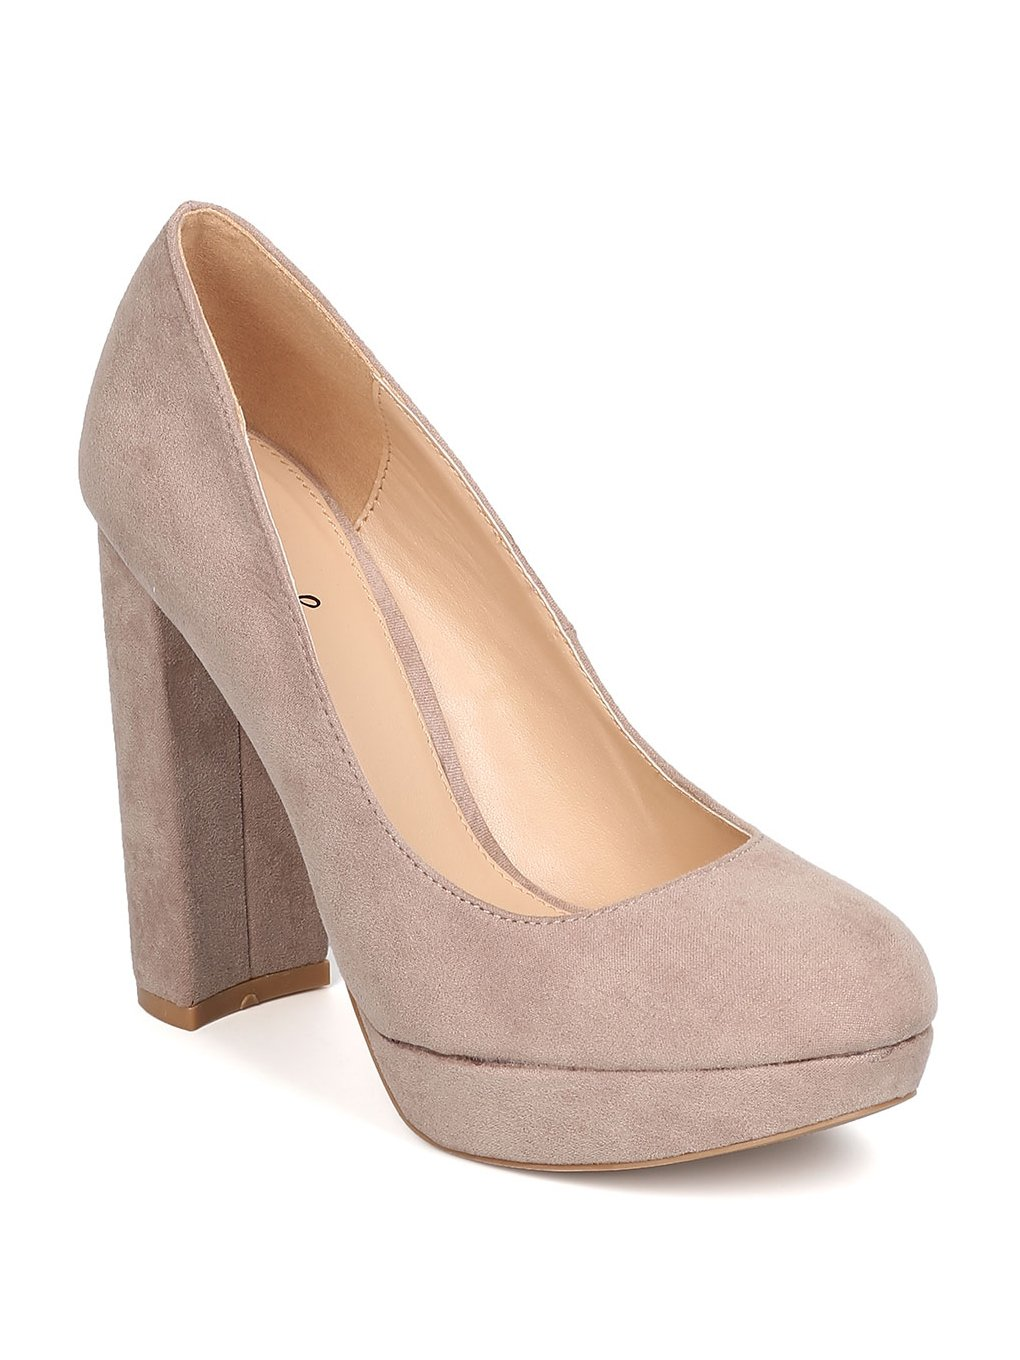 Qupid Women Faux Suede Round Toe Platform Chunky Heel Pump GB93 - Taupe (Size: 9.0)